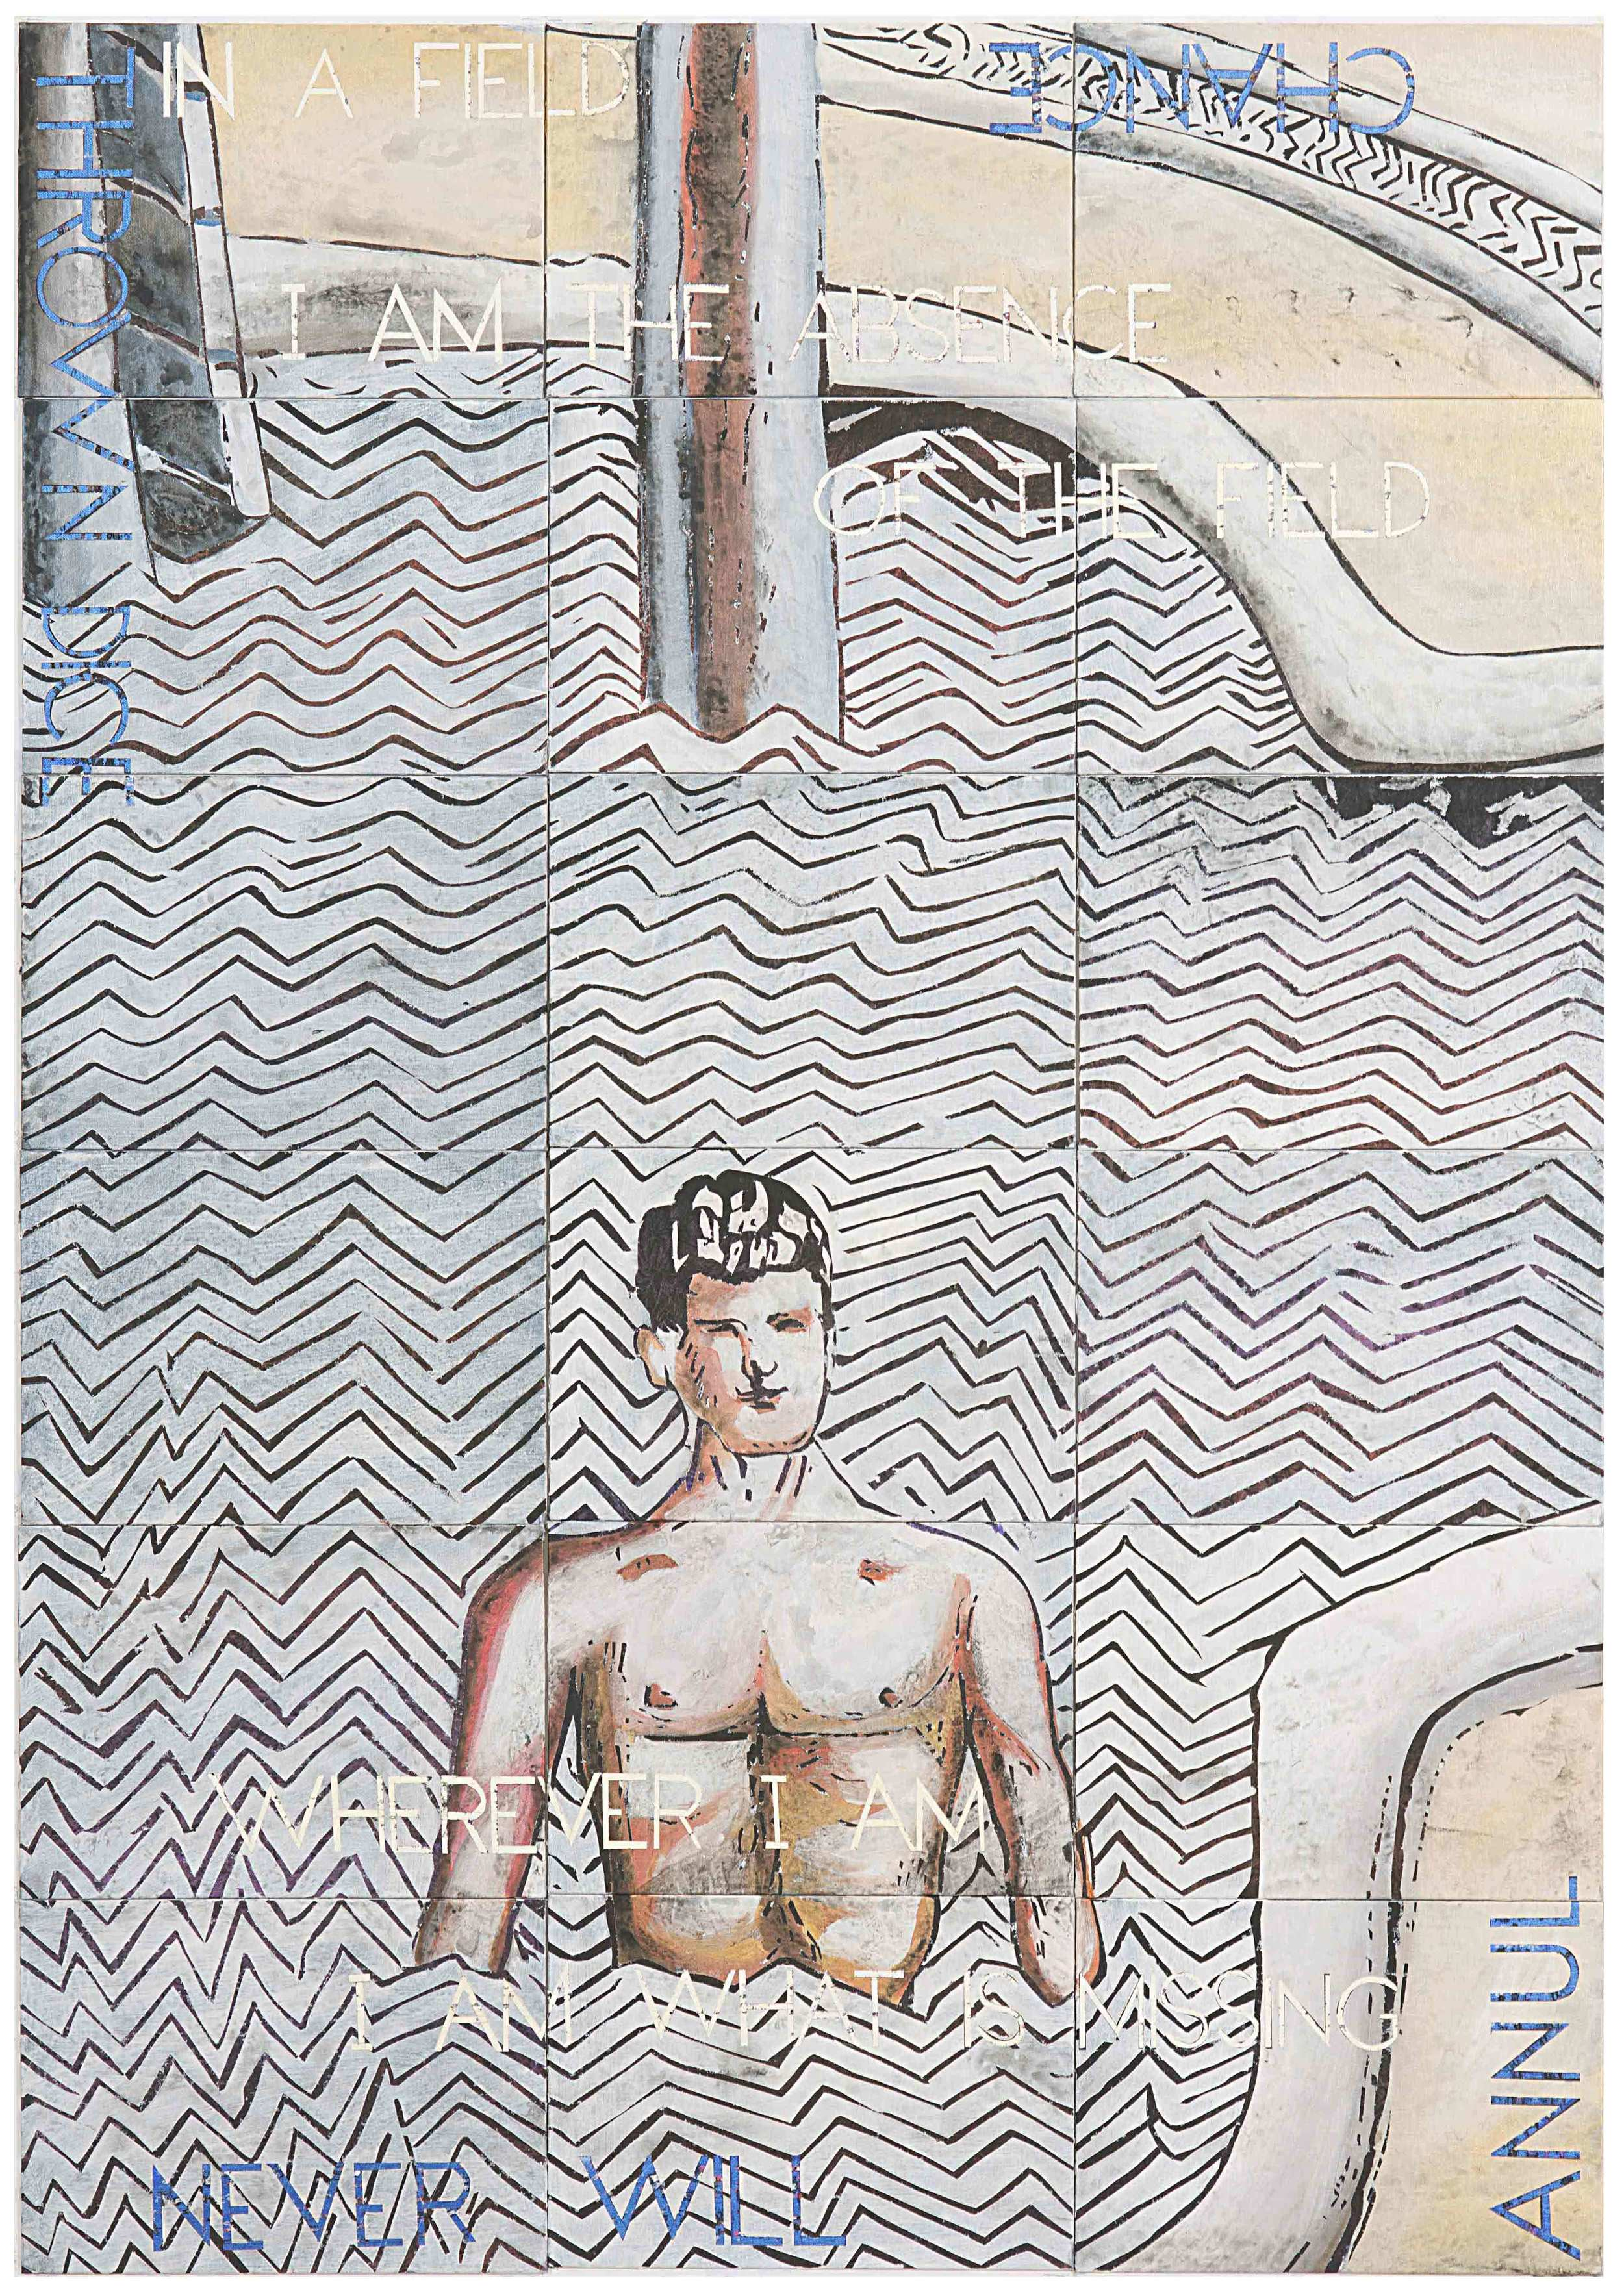 IMANTS TILLERS   The Mysterious Bathers II  2015 Synthetic polymer paint, gouache on 18 canvasboards, nos. 93575 - 93592 152.4 x 106.7 cm